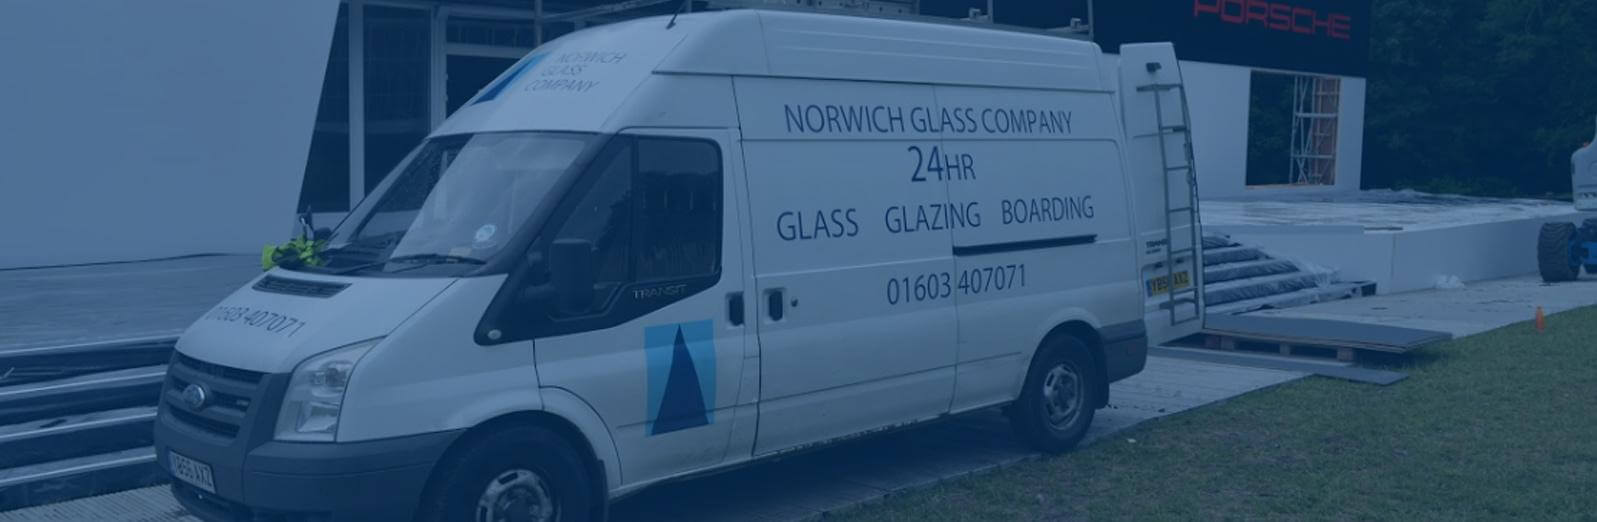 contact-norwich-glass